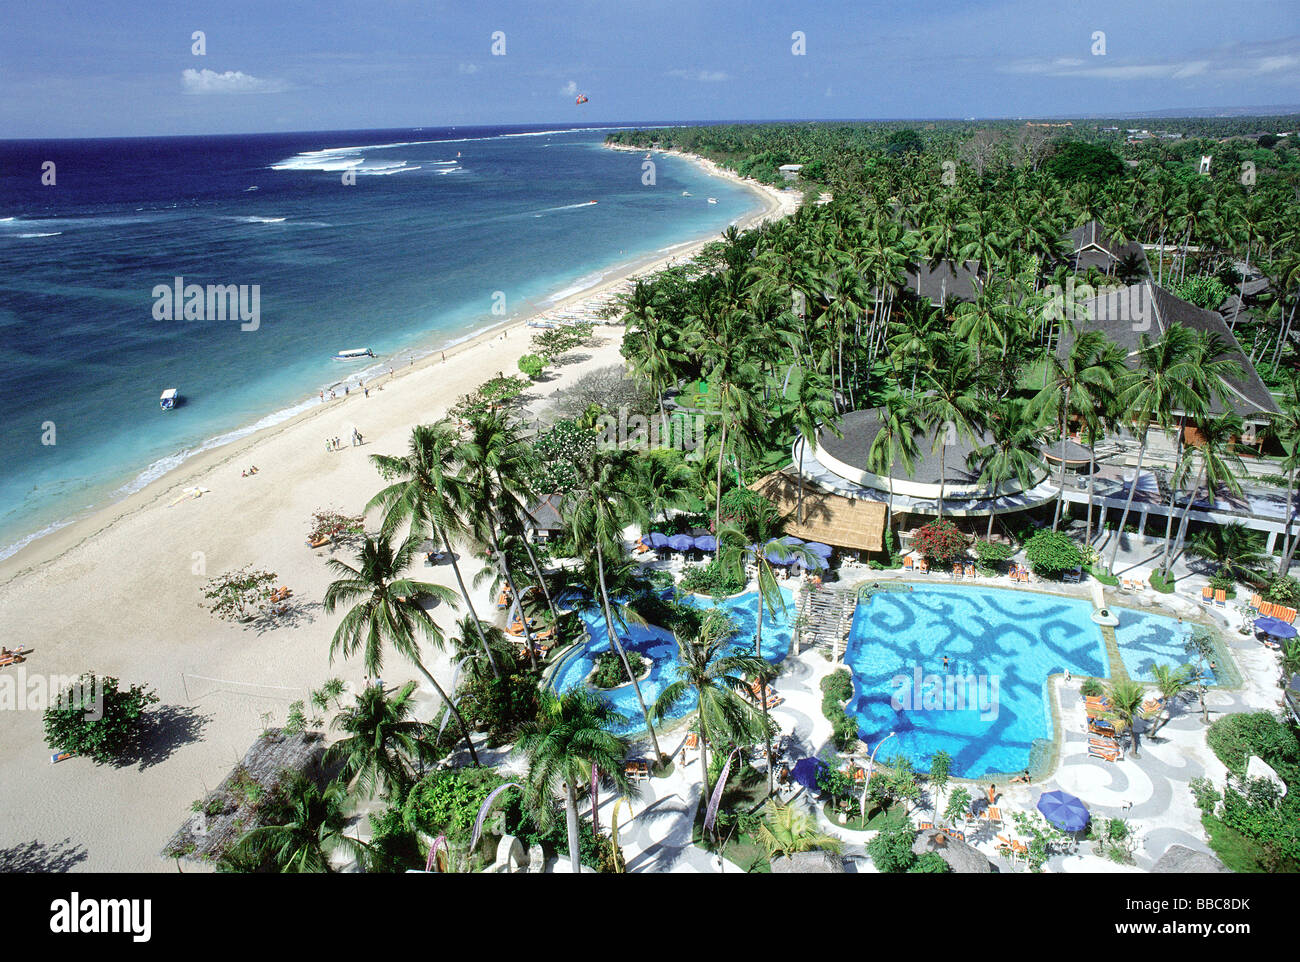 Indonesia bali sanur beach aerial view from top of for Hotel in bali indonesia near beach